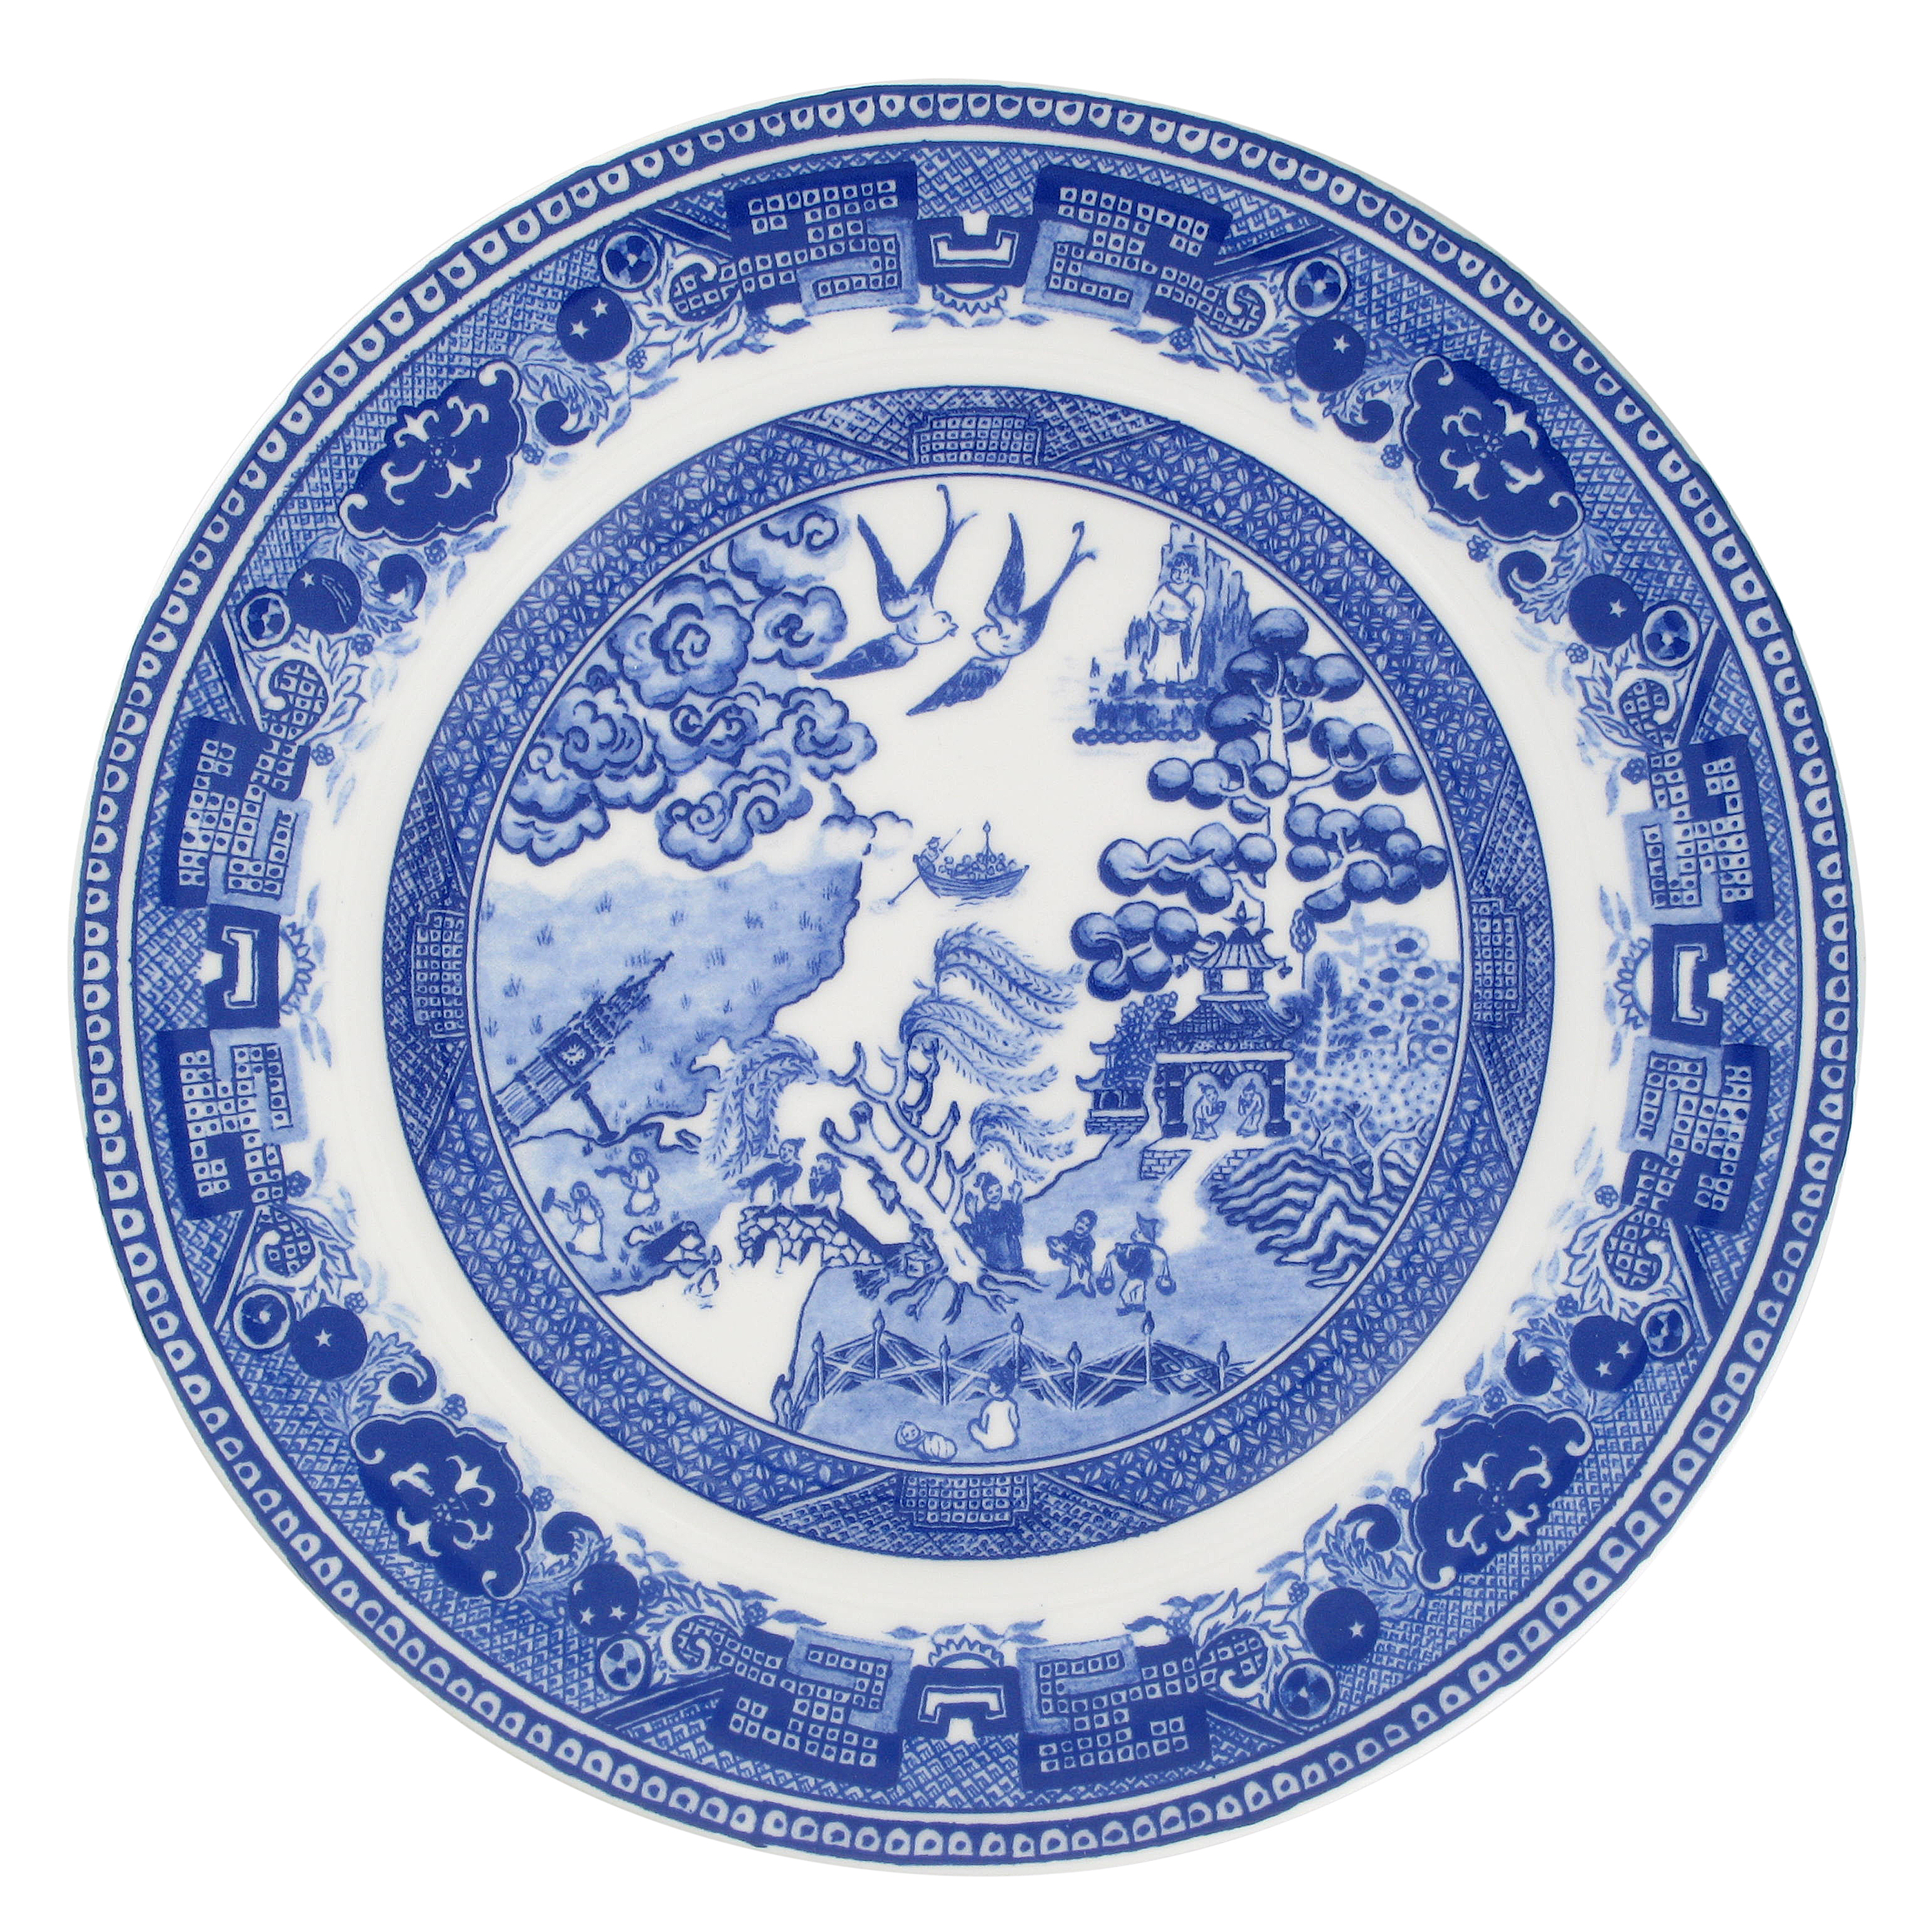 Brexit Willow Pattern plate